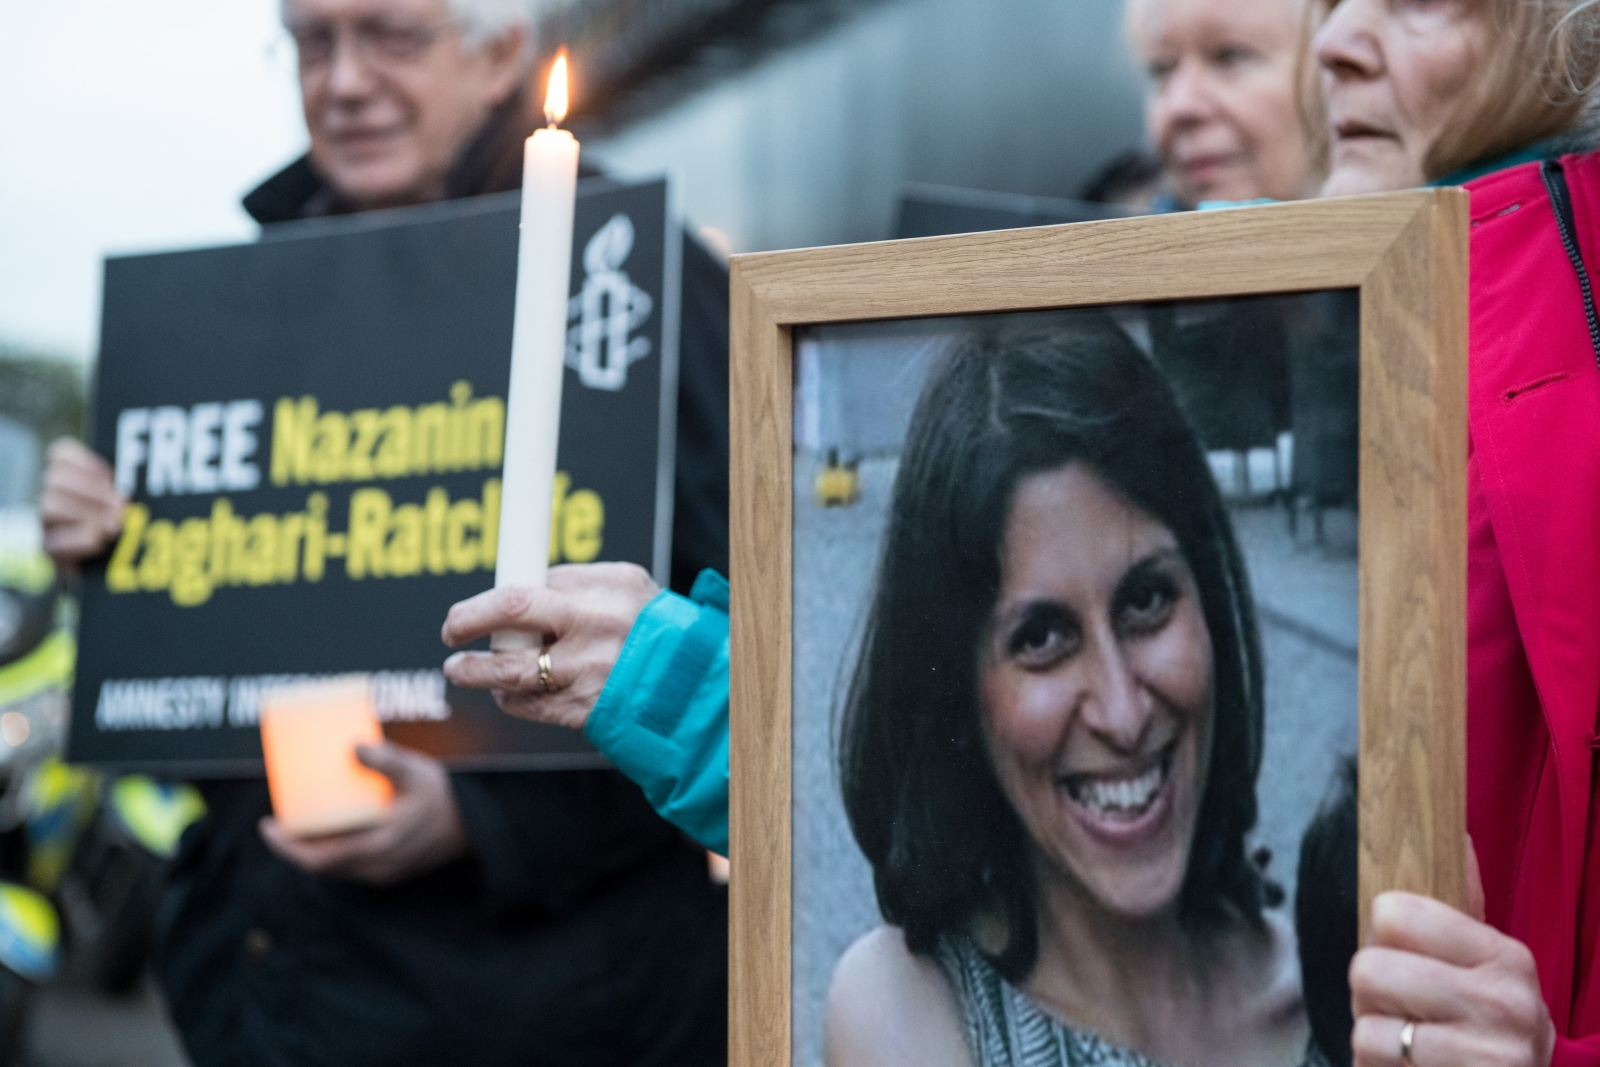 Johnson to raise jailed Briton Nazanin Zaghari-Ratcliffe's case in Iran trip